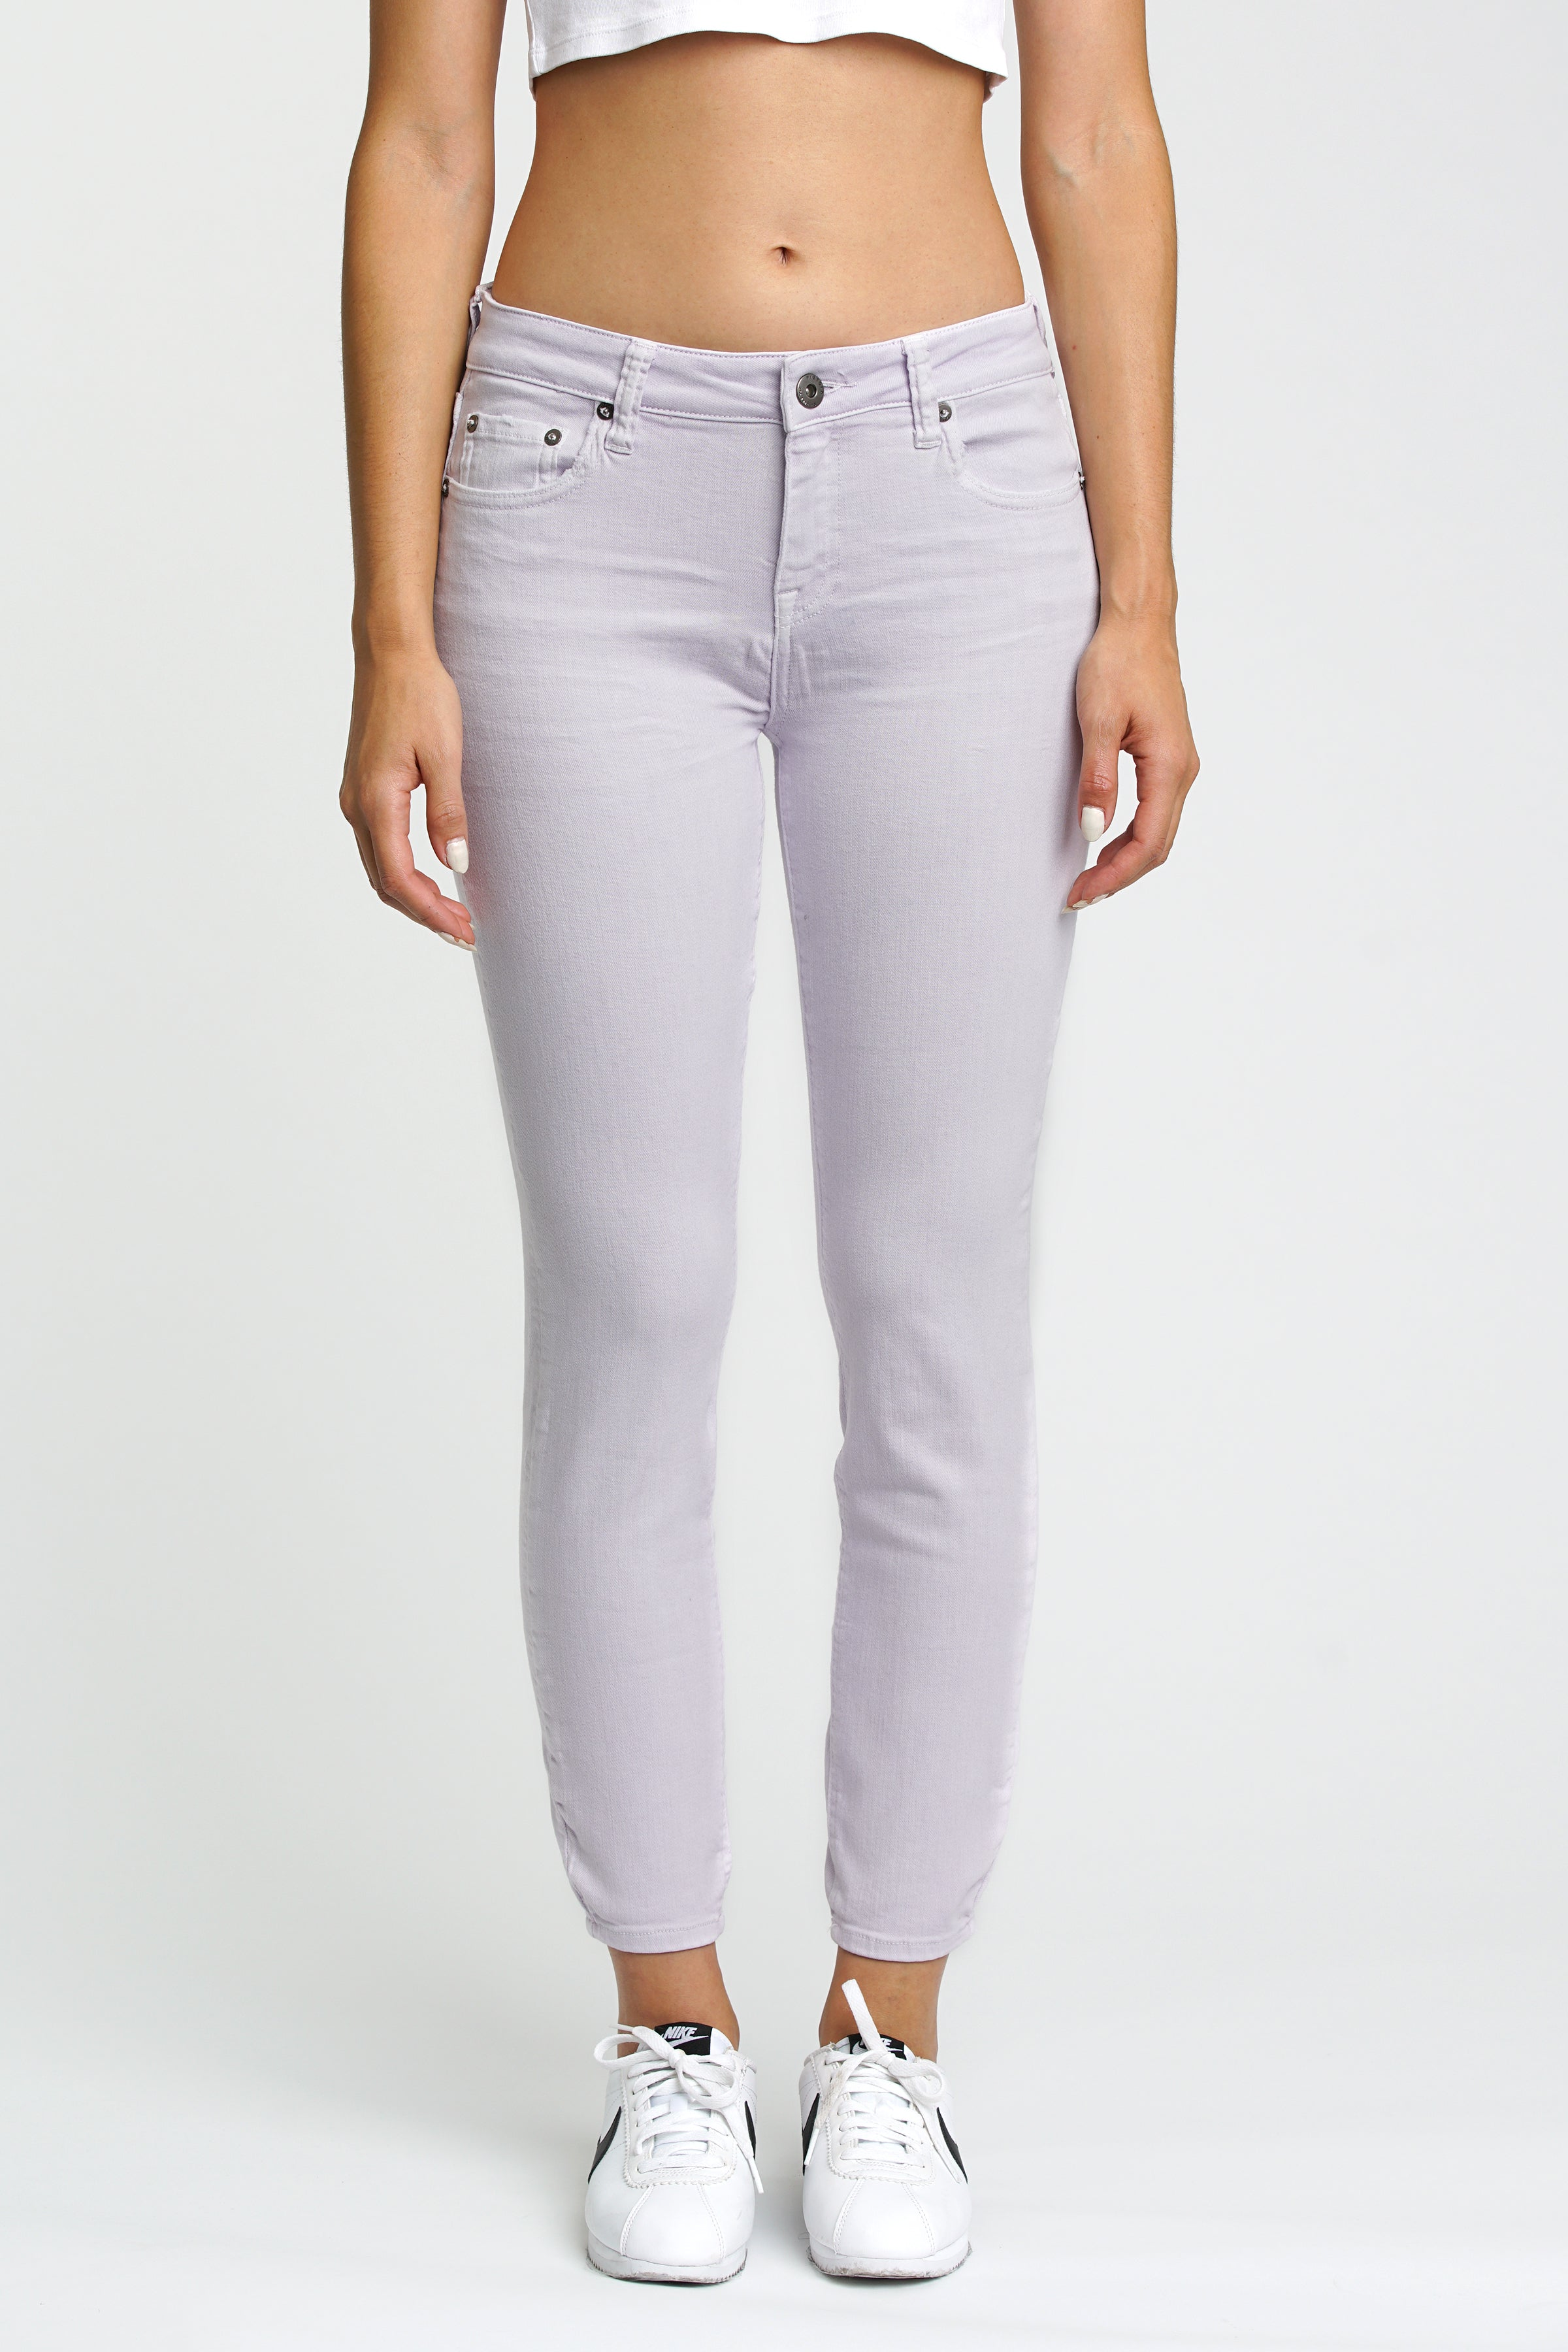 Aline High Rise Skinny - Lilac Field